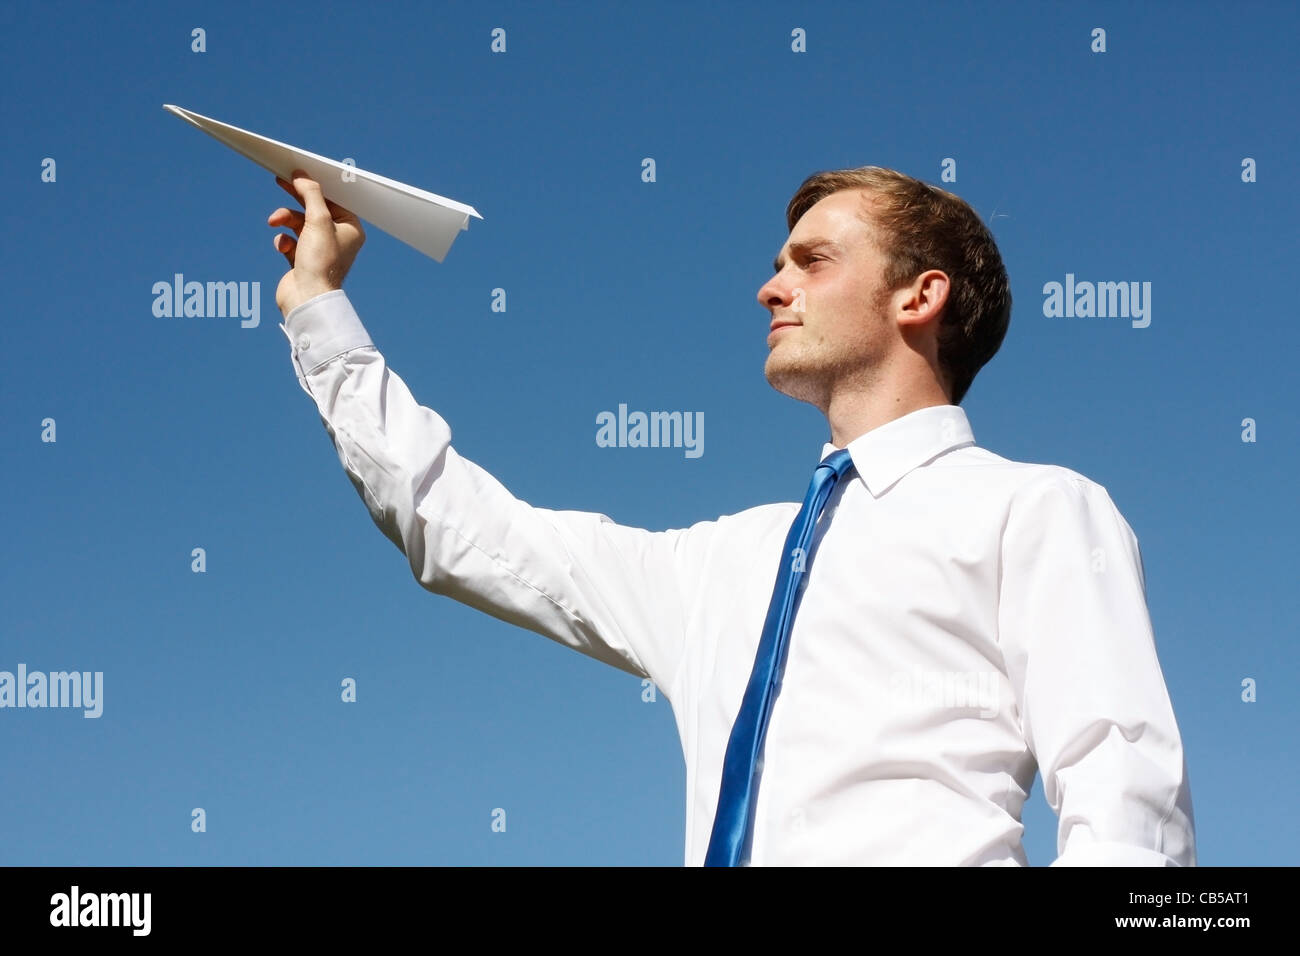 A business man throwing a paper plane - Stock Image